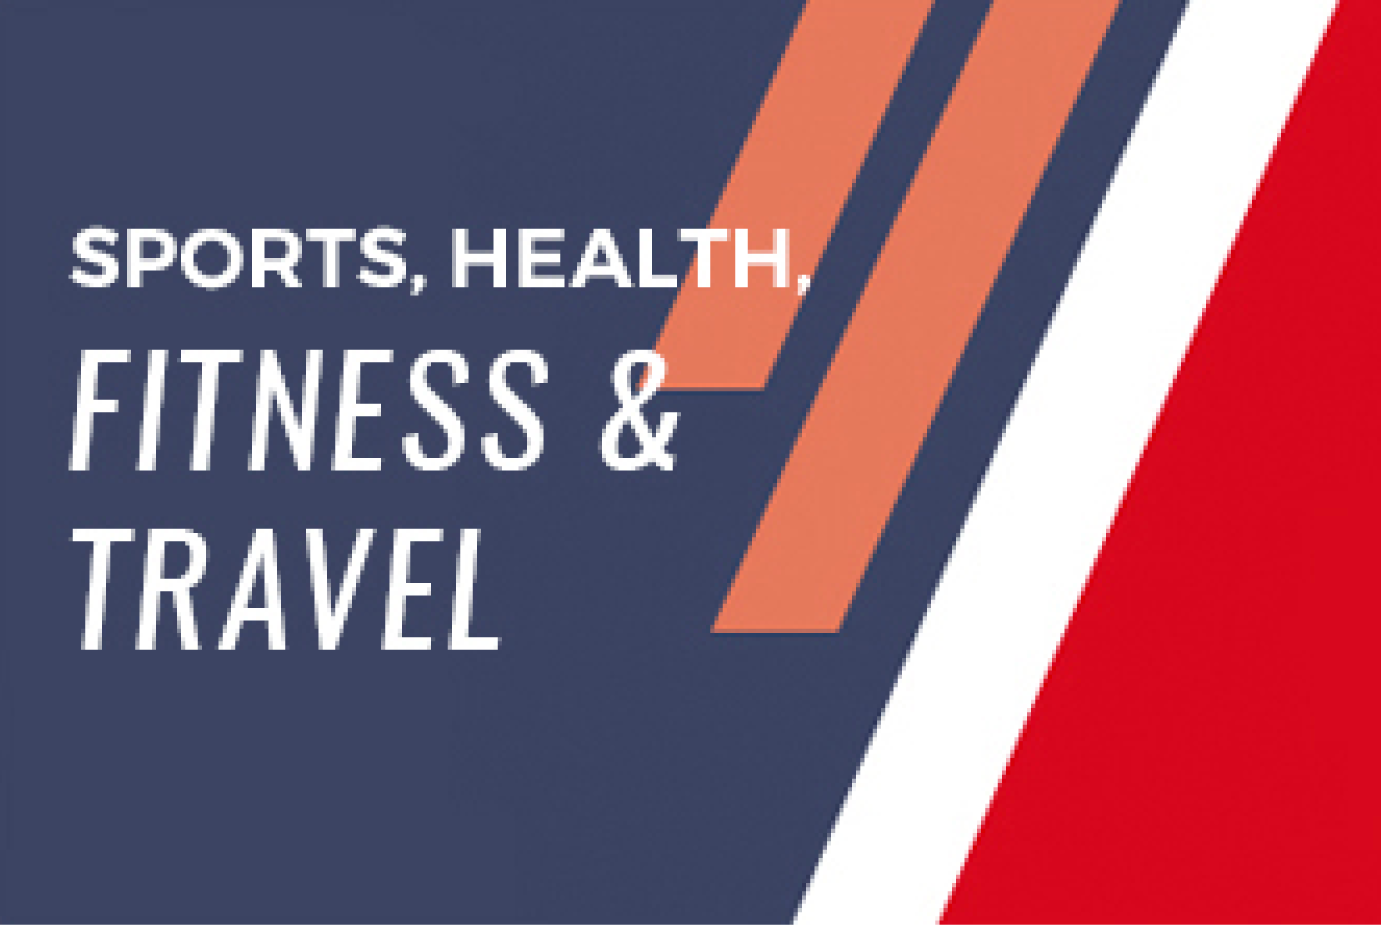 Sports, Health, Fitness and Travel